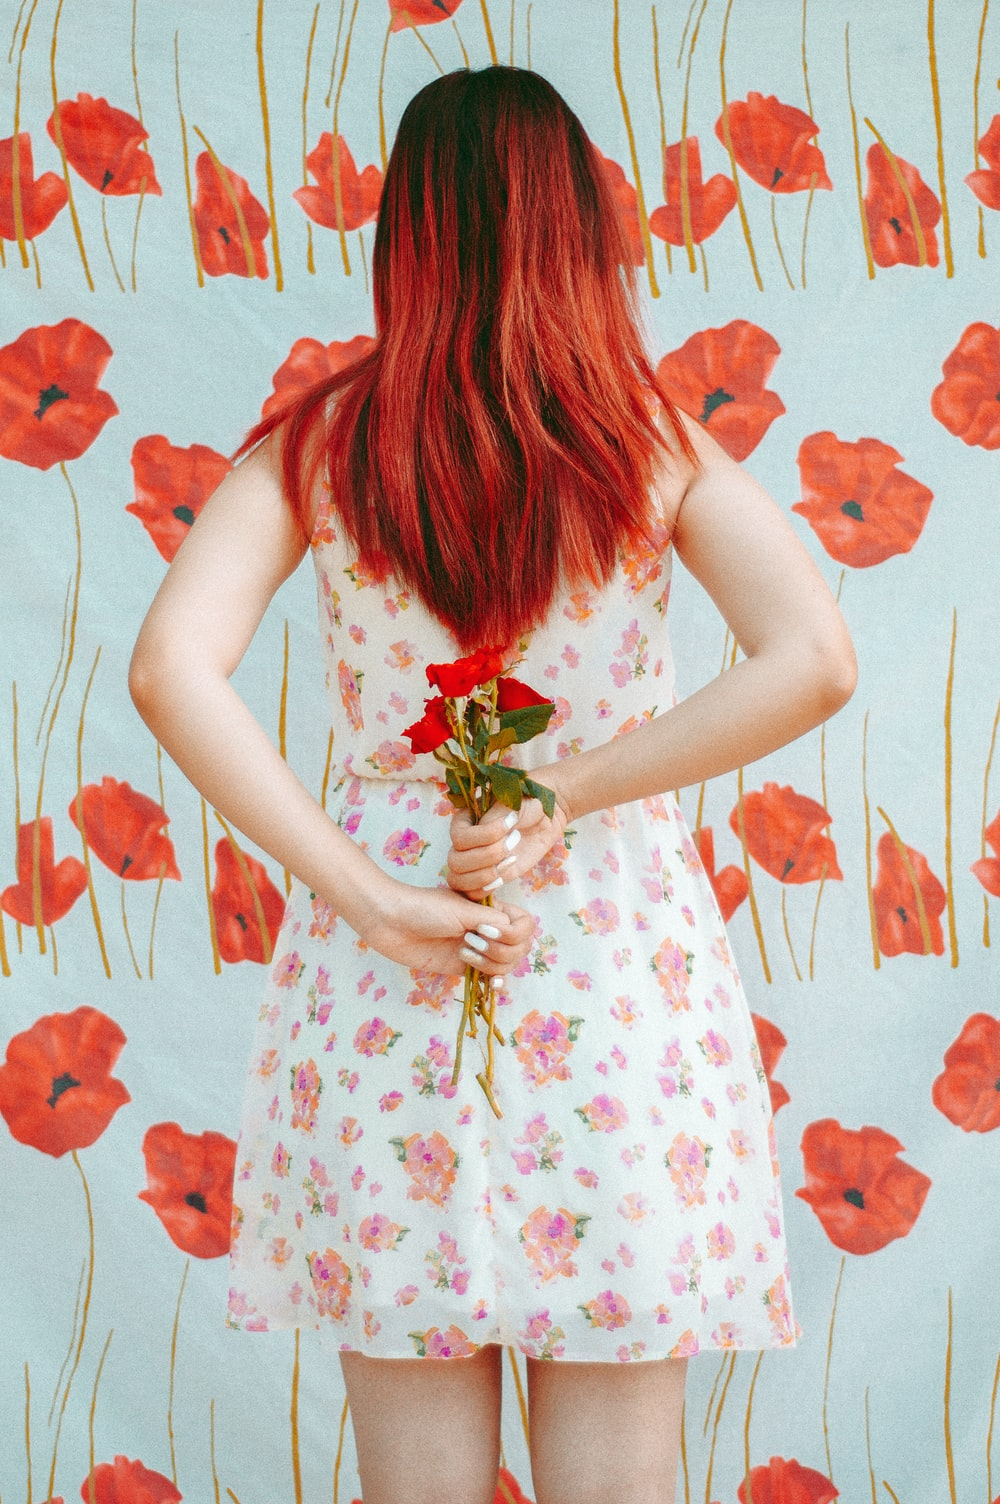 woman hides red roses from her back